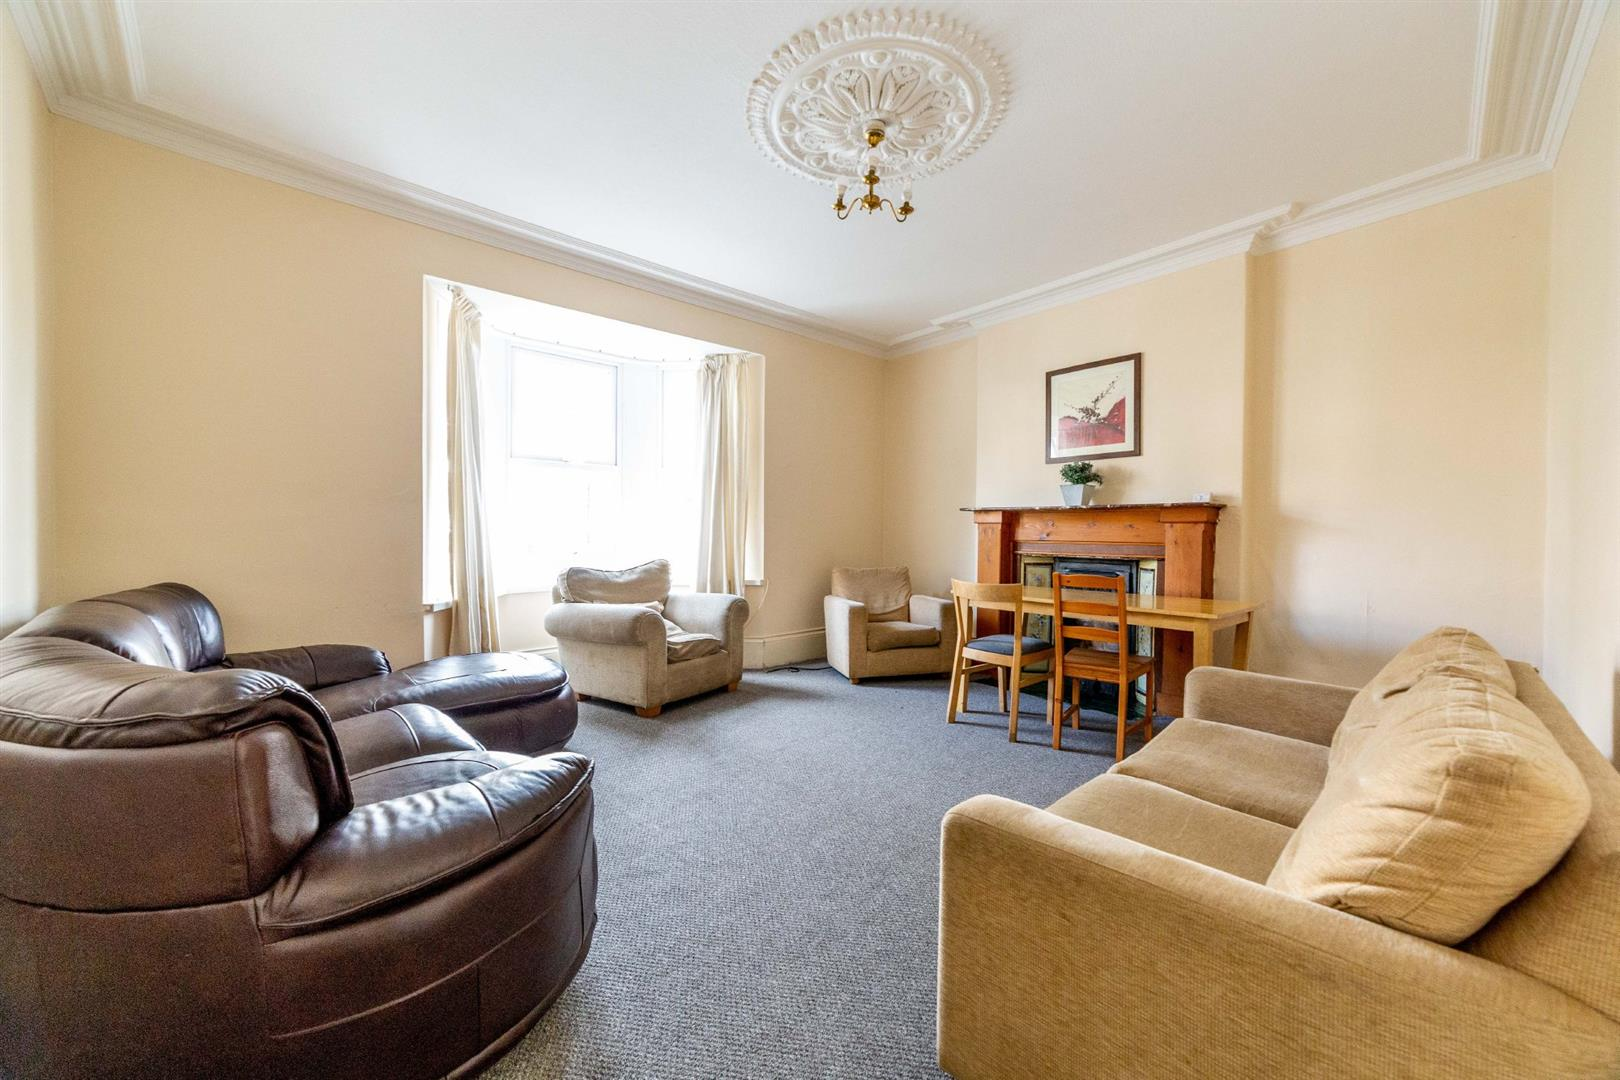 6 bed terraced house to rent in Newcastle Upon Tyne, NE2 3LD, NE2